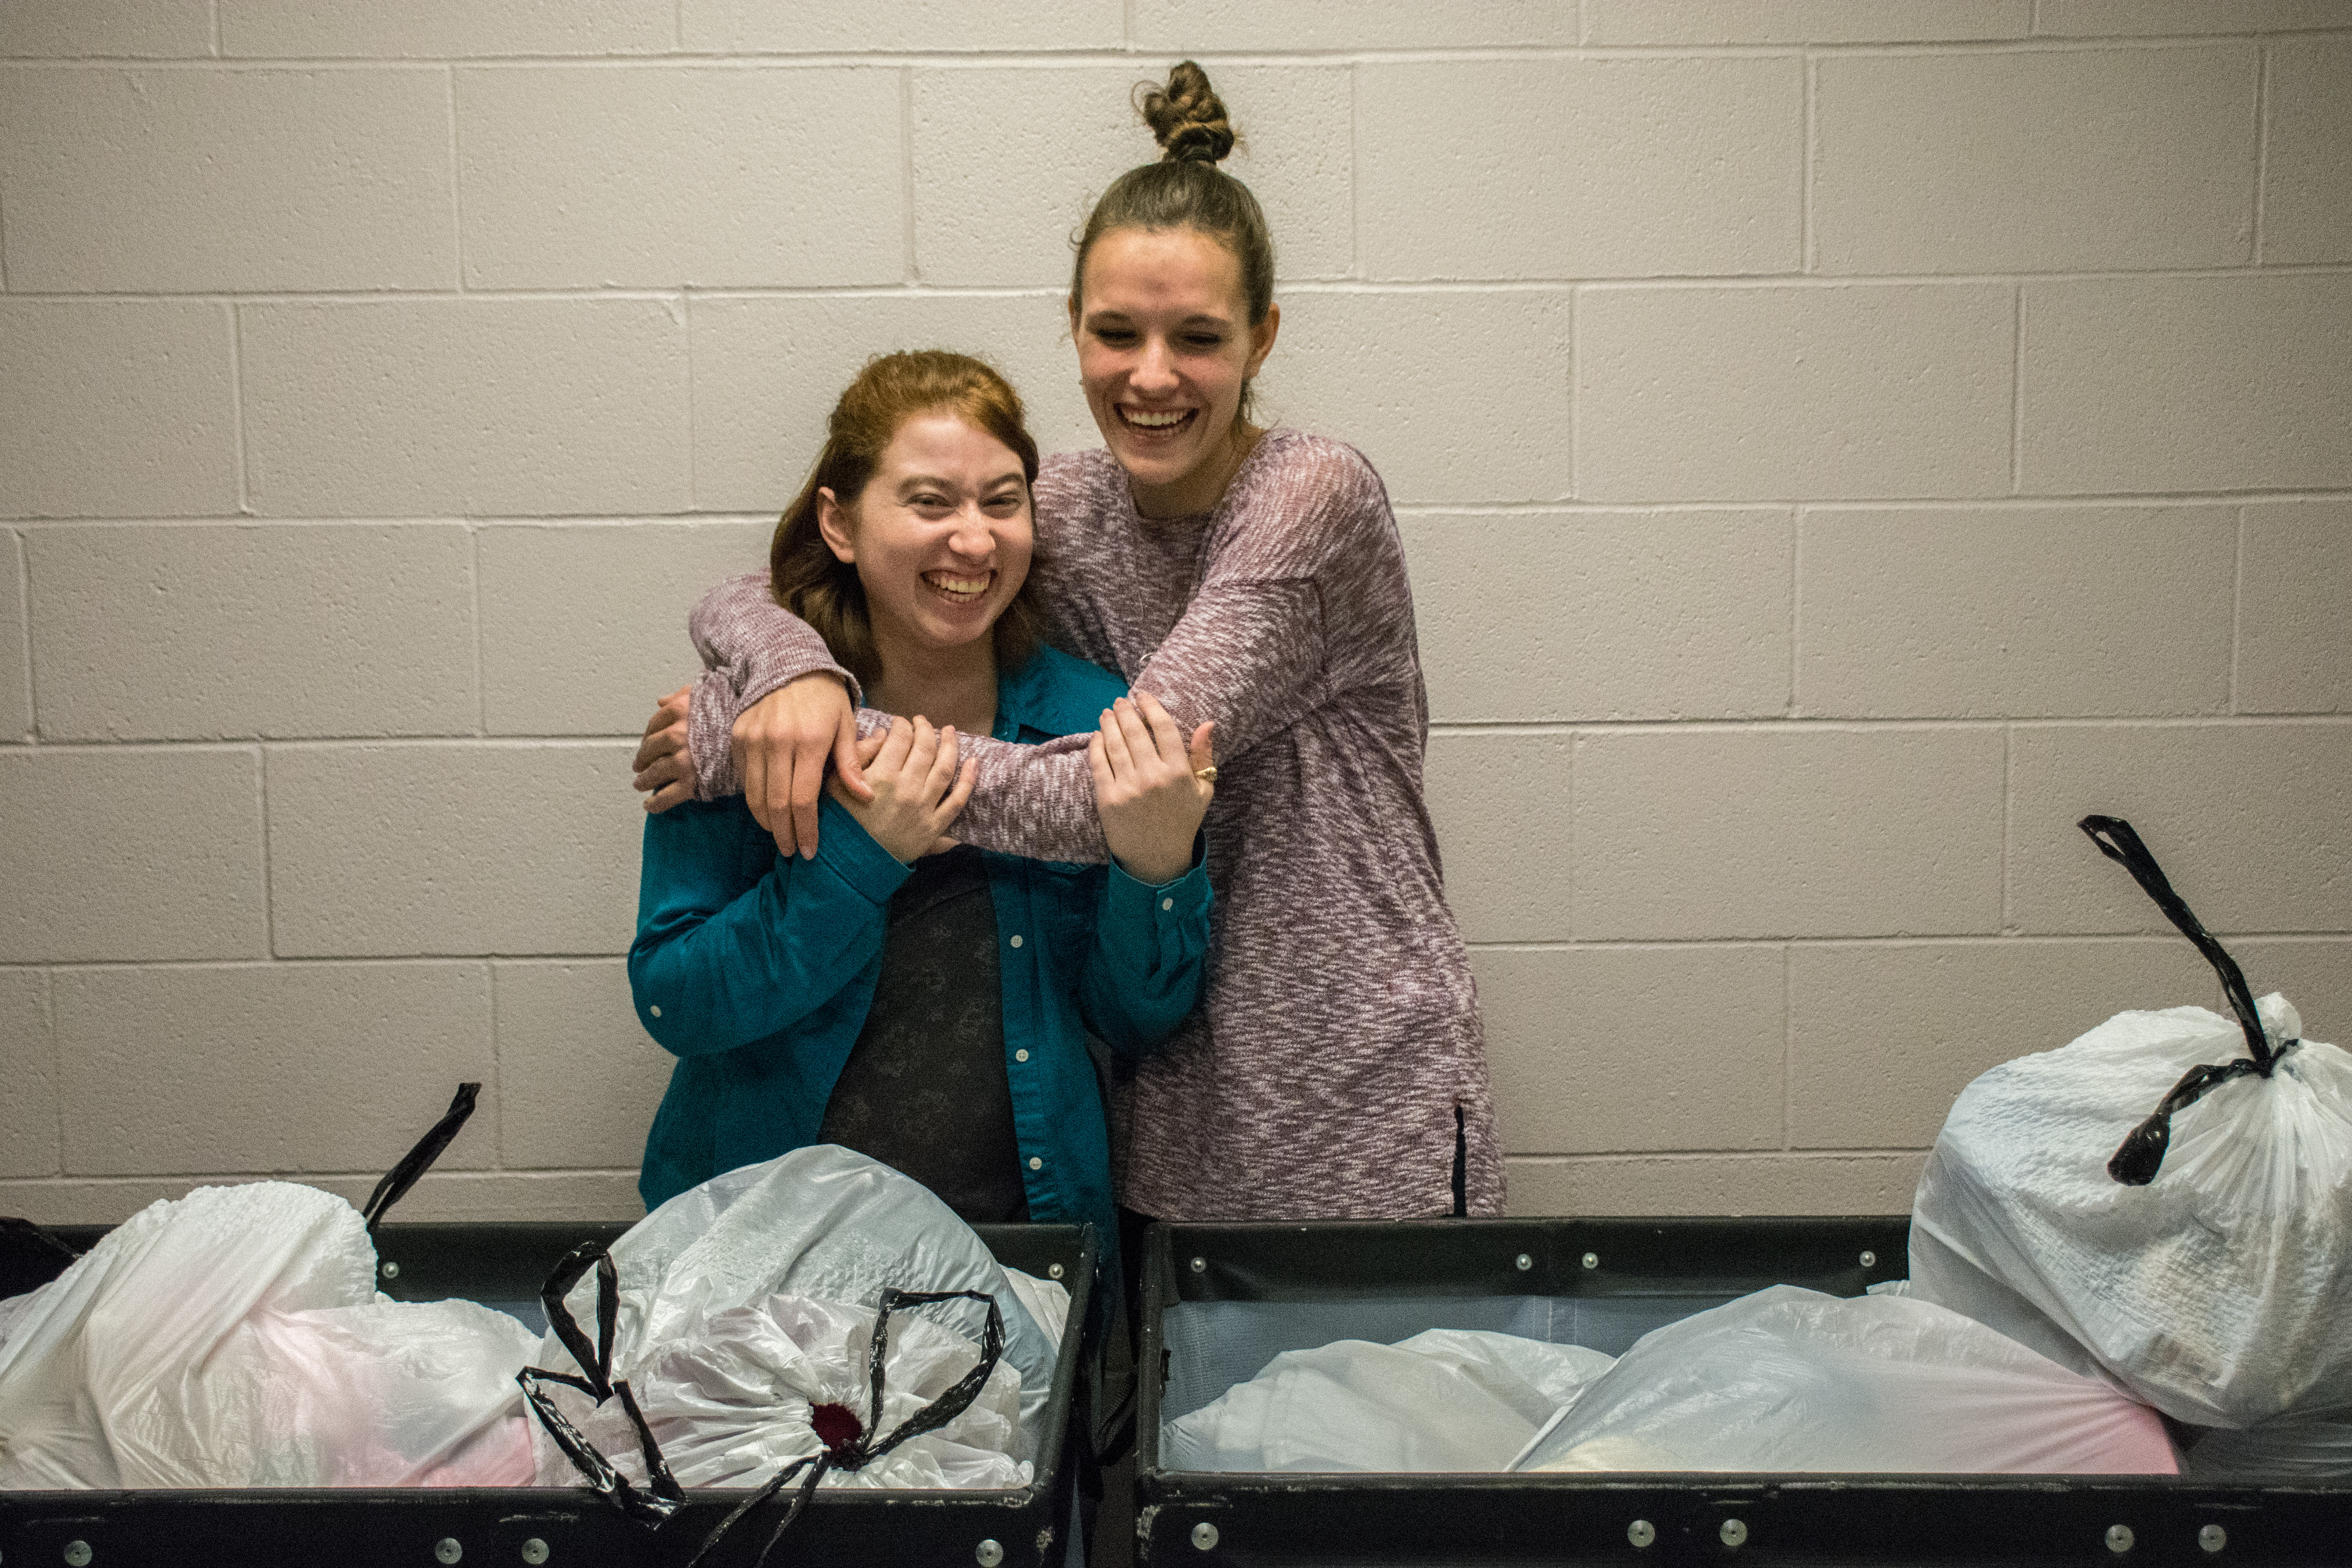 Students Monica Hamrin (left) and Anna Hurst (right), stand over piles of clothes donated to their project to help the homeless in the Oklahoma City metro area.  Photo by Abby Bellow